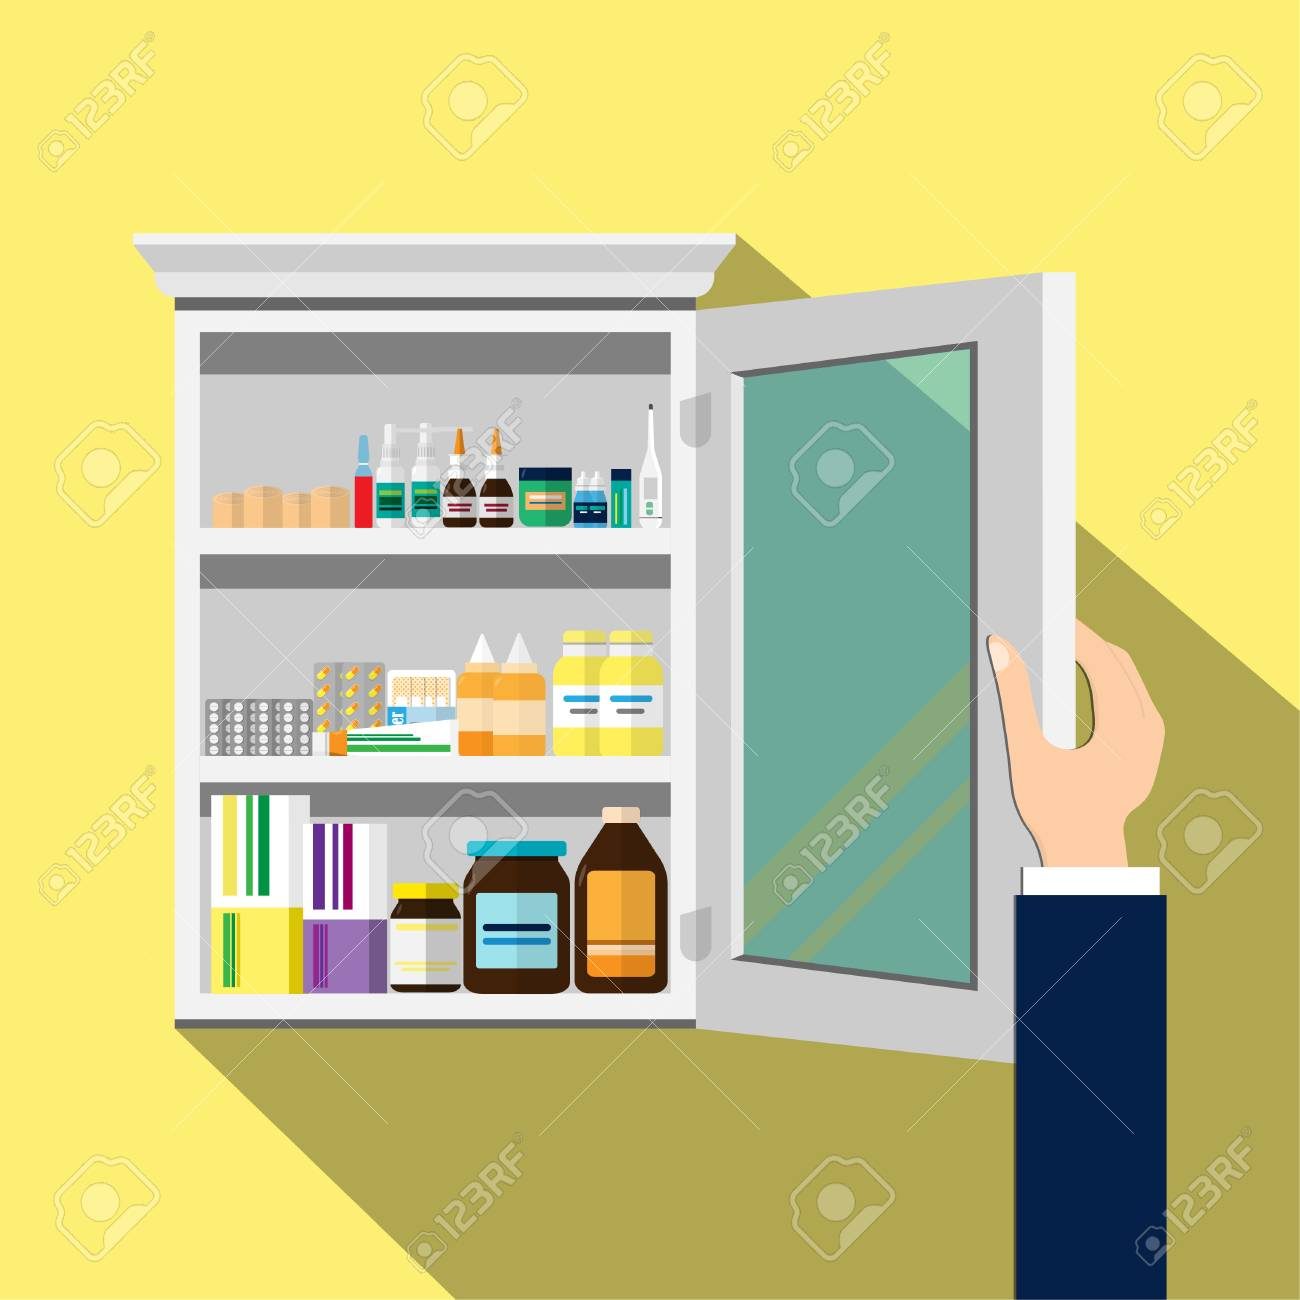 Open The White Wood Medicine Cabinet Yellow Background Vector Royalty Free Cliparts Vectors And Stock Illustration Image 101785040